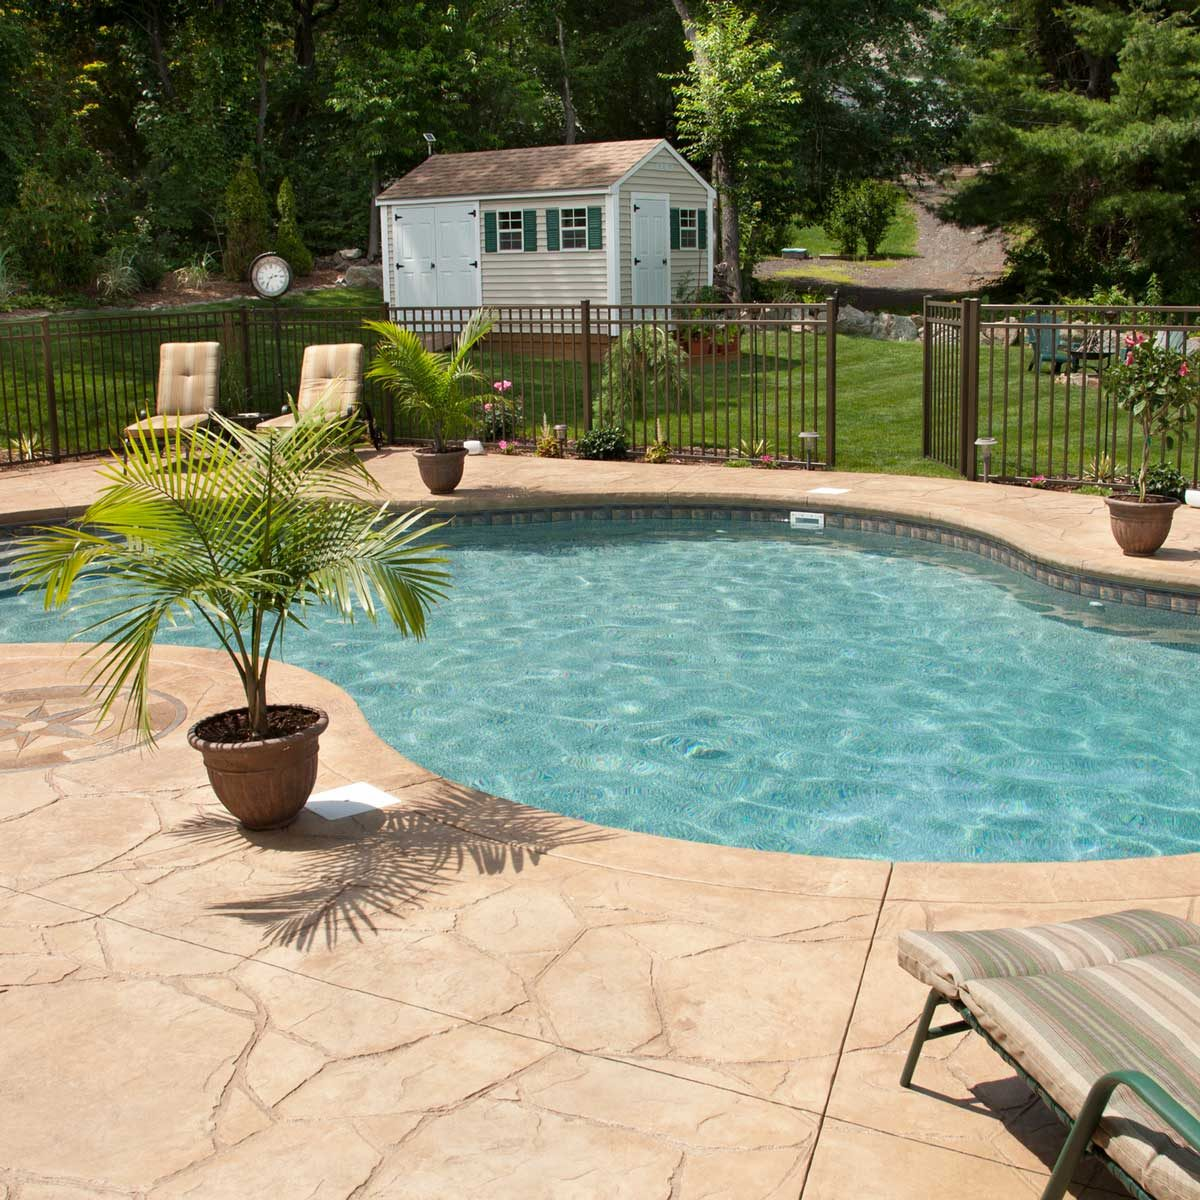 Backyard pool with fence